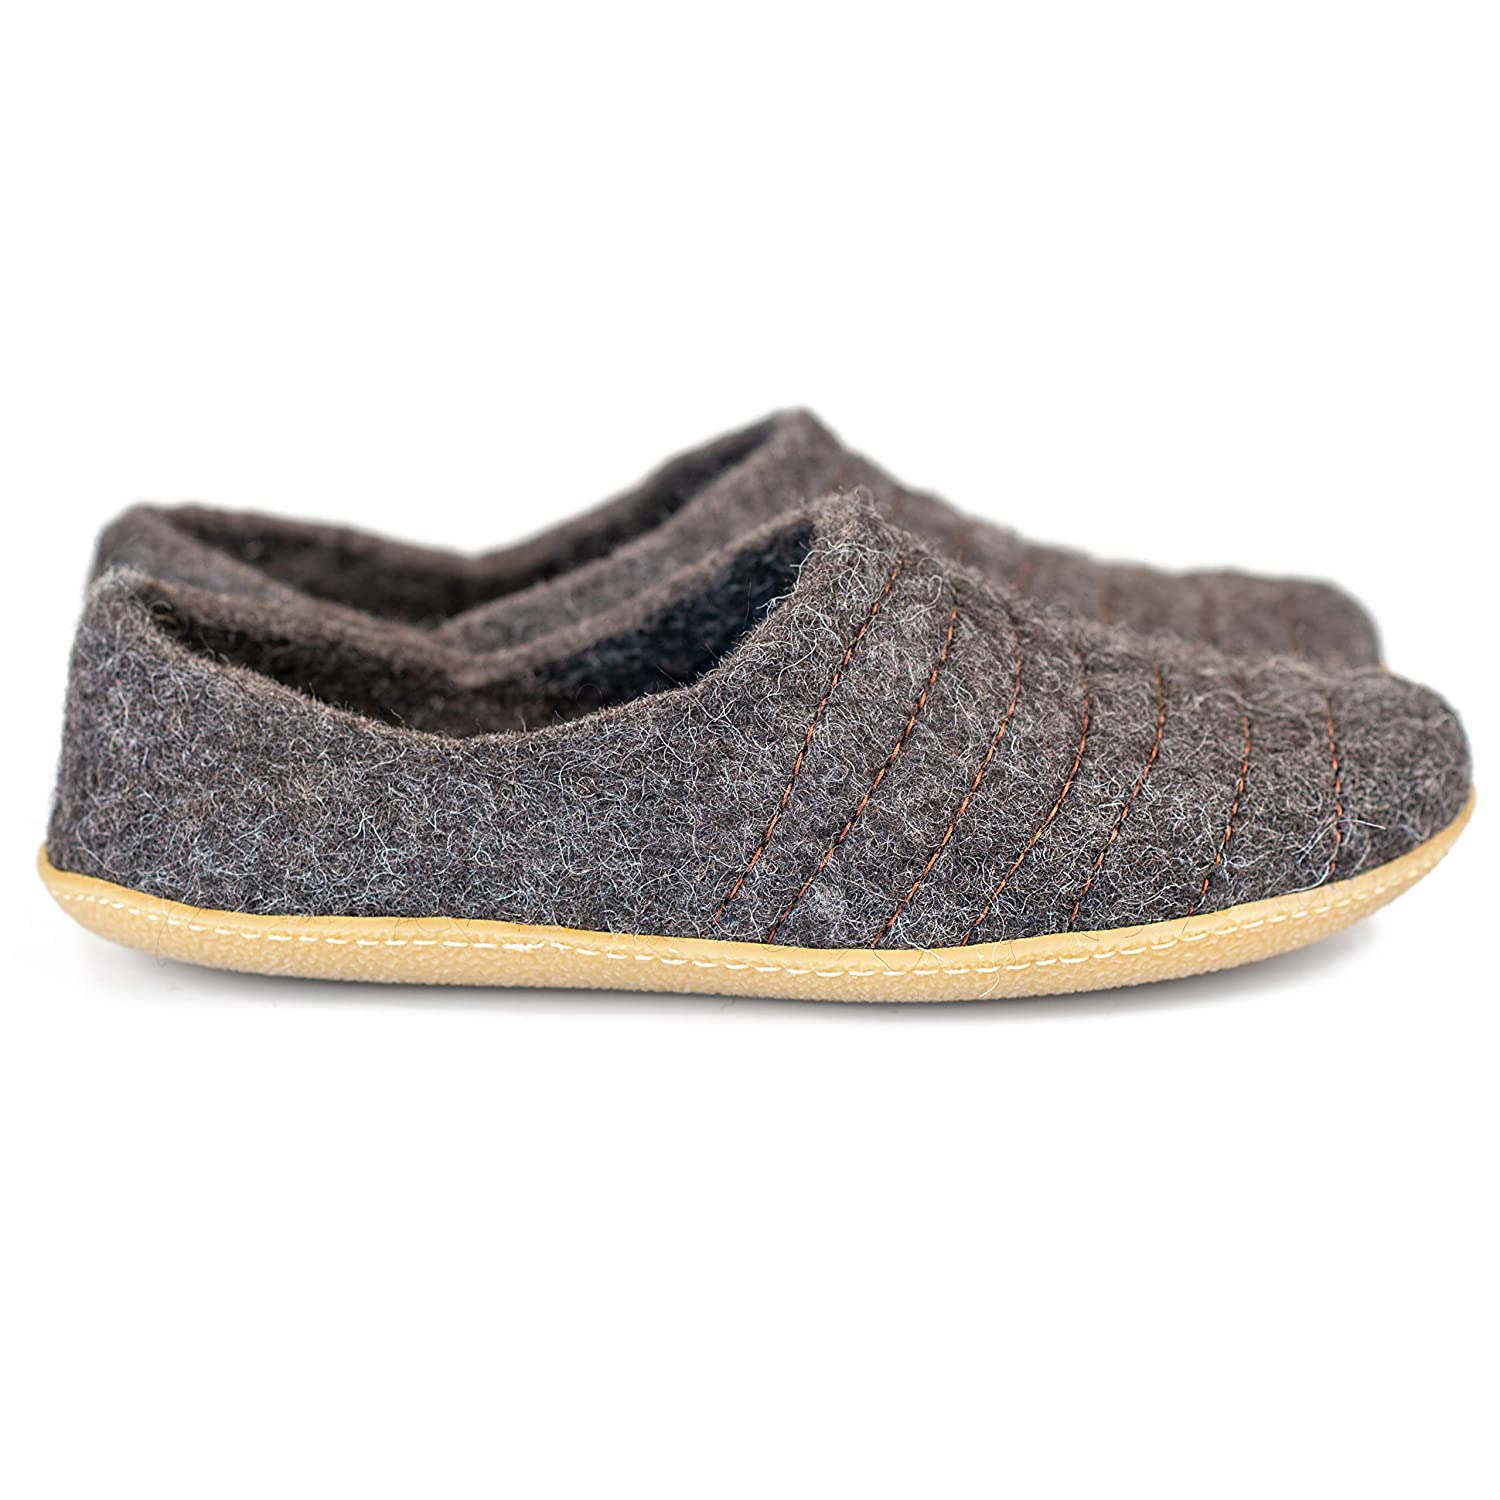 a55cffa79ea Amazon.com: BureBure Women's Wool Slippers Cocoon Dark Grey Brow ...